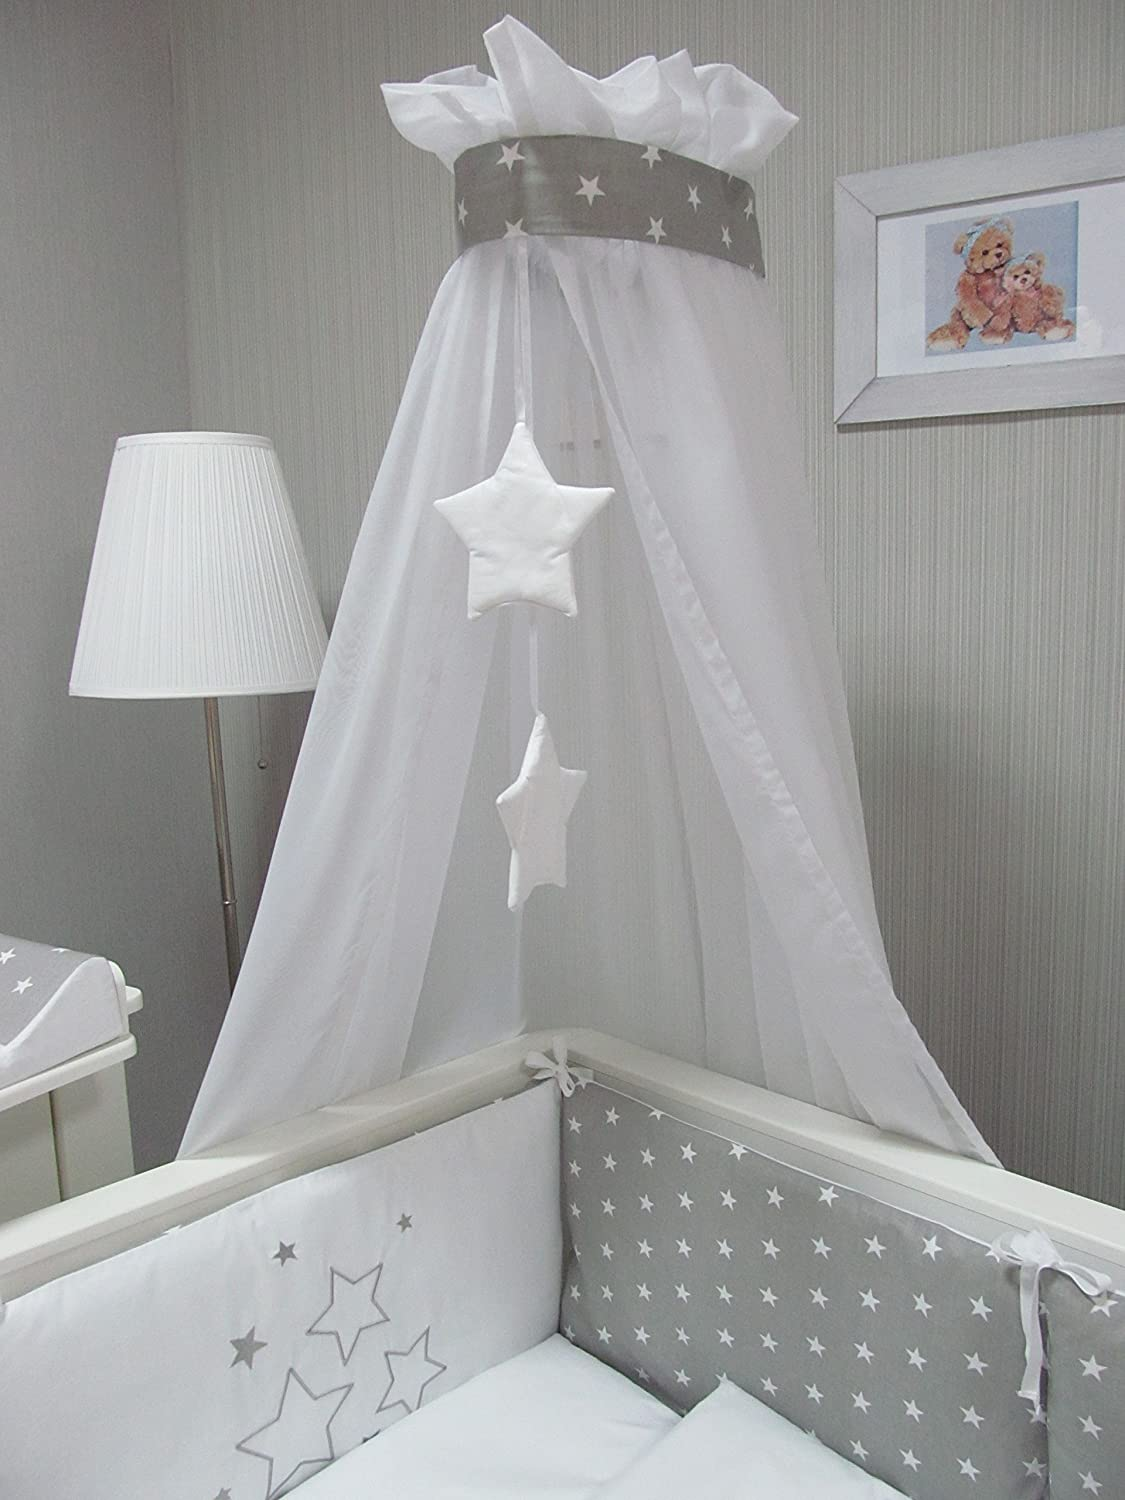 baby bettw sche set stars 4tlg bett set 100x135 voile babybett 70x140 sterne ebay. Black Bedroom Furniture Sets. Home Design Ideas